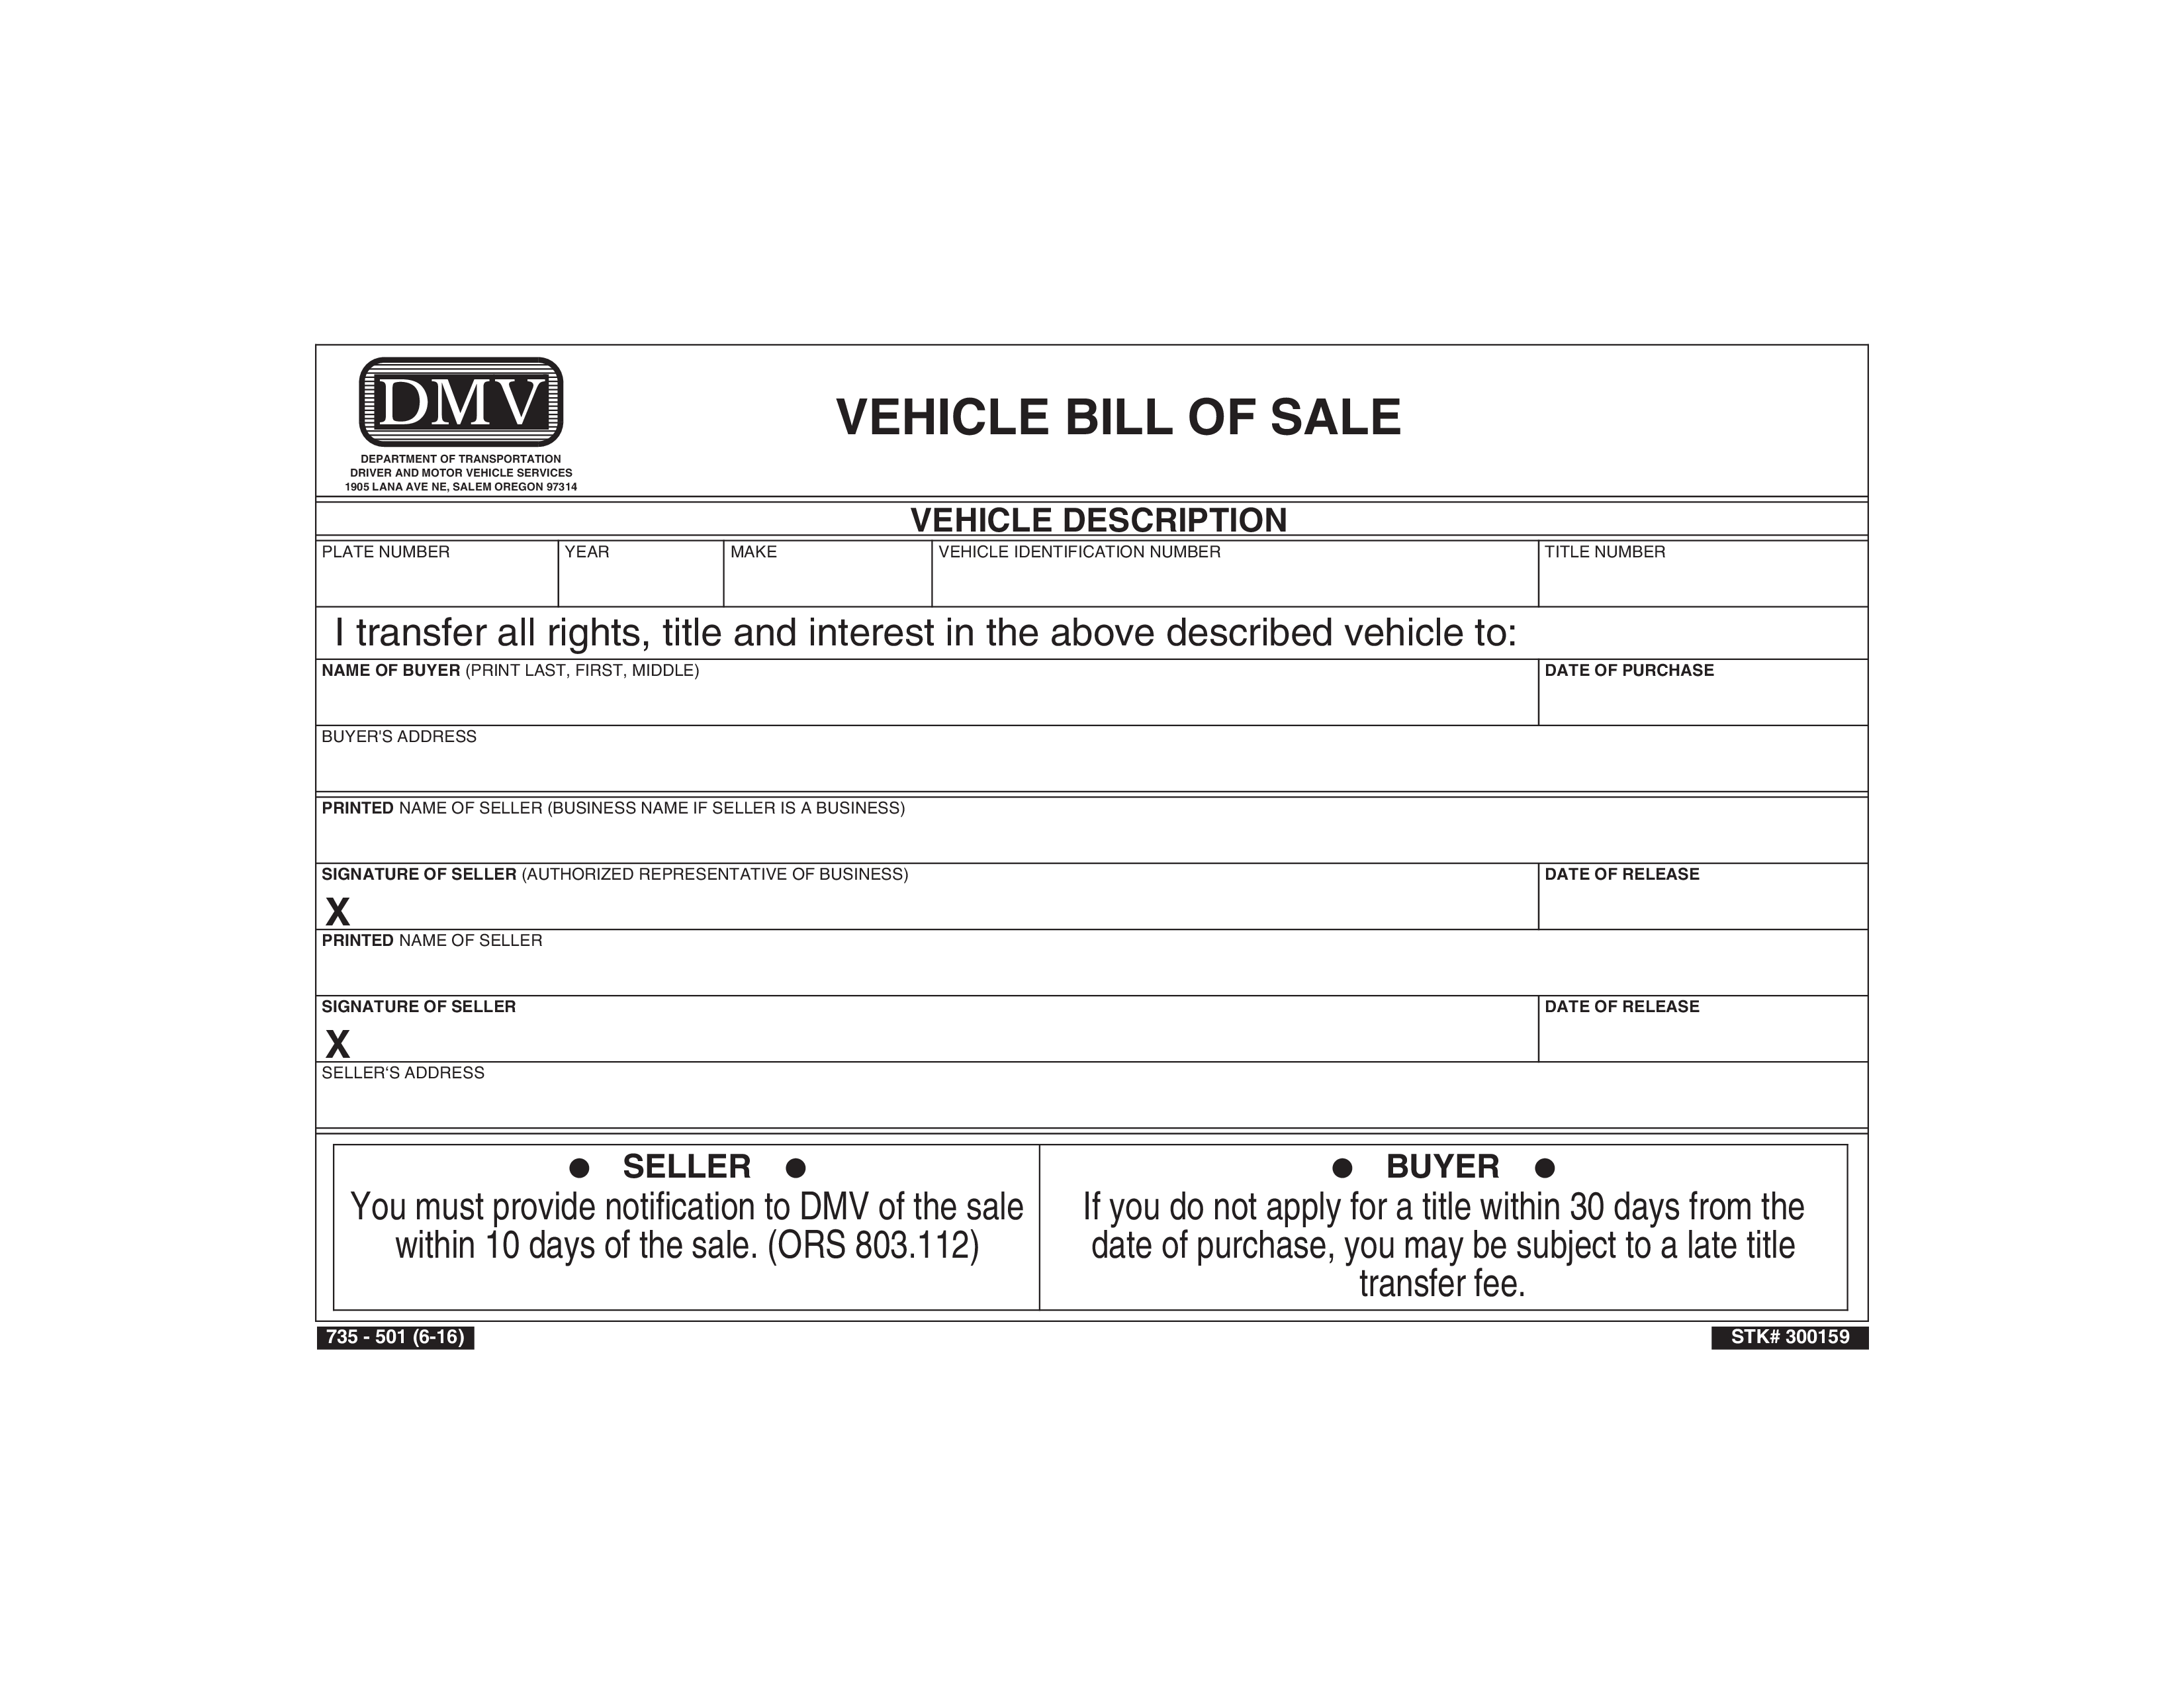 Used Vehicle Bill Of Sale - How To Create An Used Vehicle